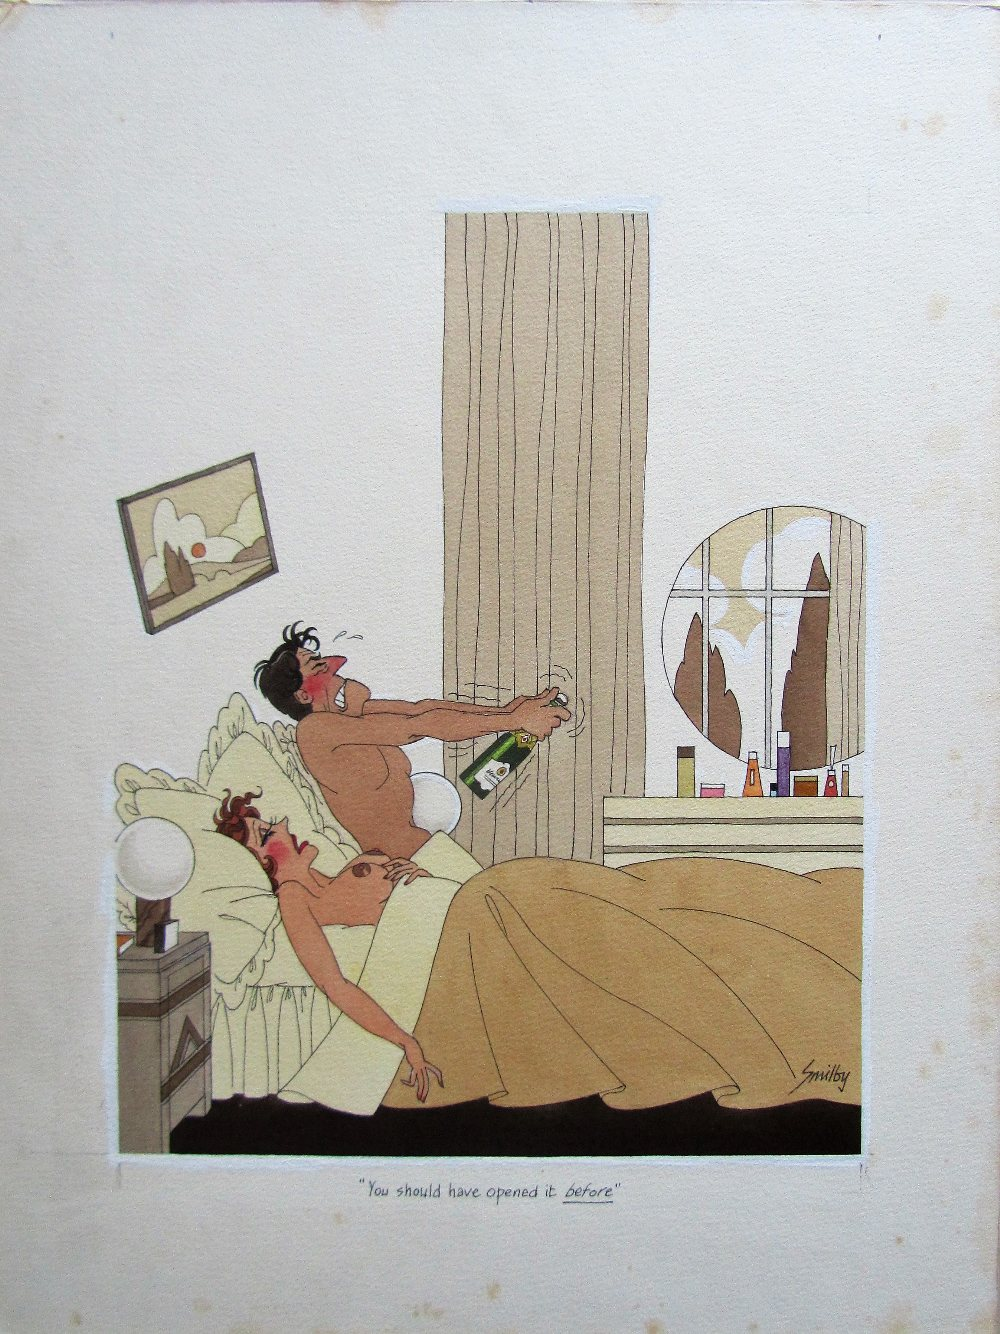 Lot 49 - Smilby, Francis Wilford-Smith 'You should have opened it before' cartoon